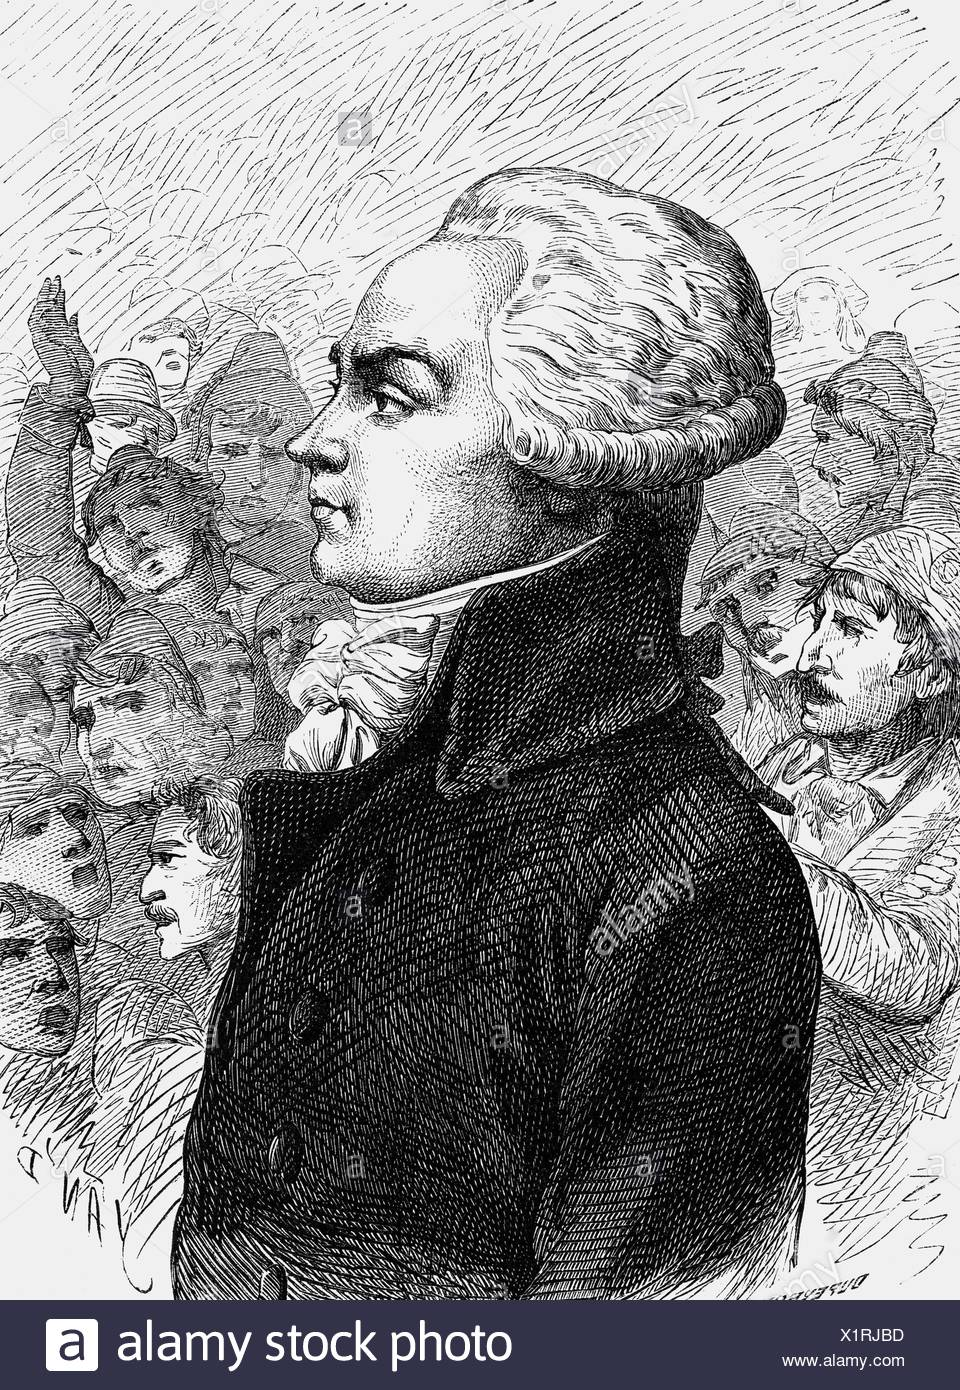 Robespierre, Maximilien de, 6.5.1758 - 28.7.1794, French politician, Member  of the Committee of Public Safety 27.7.1793 - 27.7.1794, portrait, ...